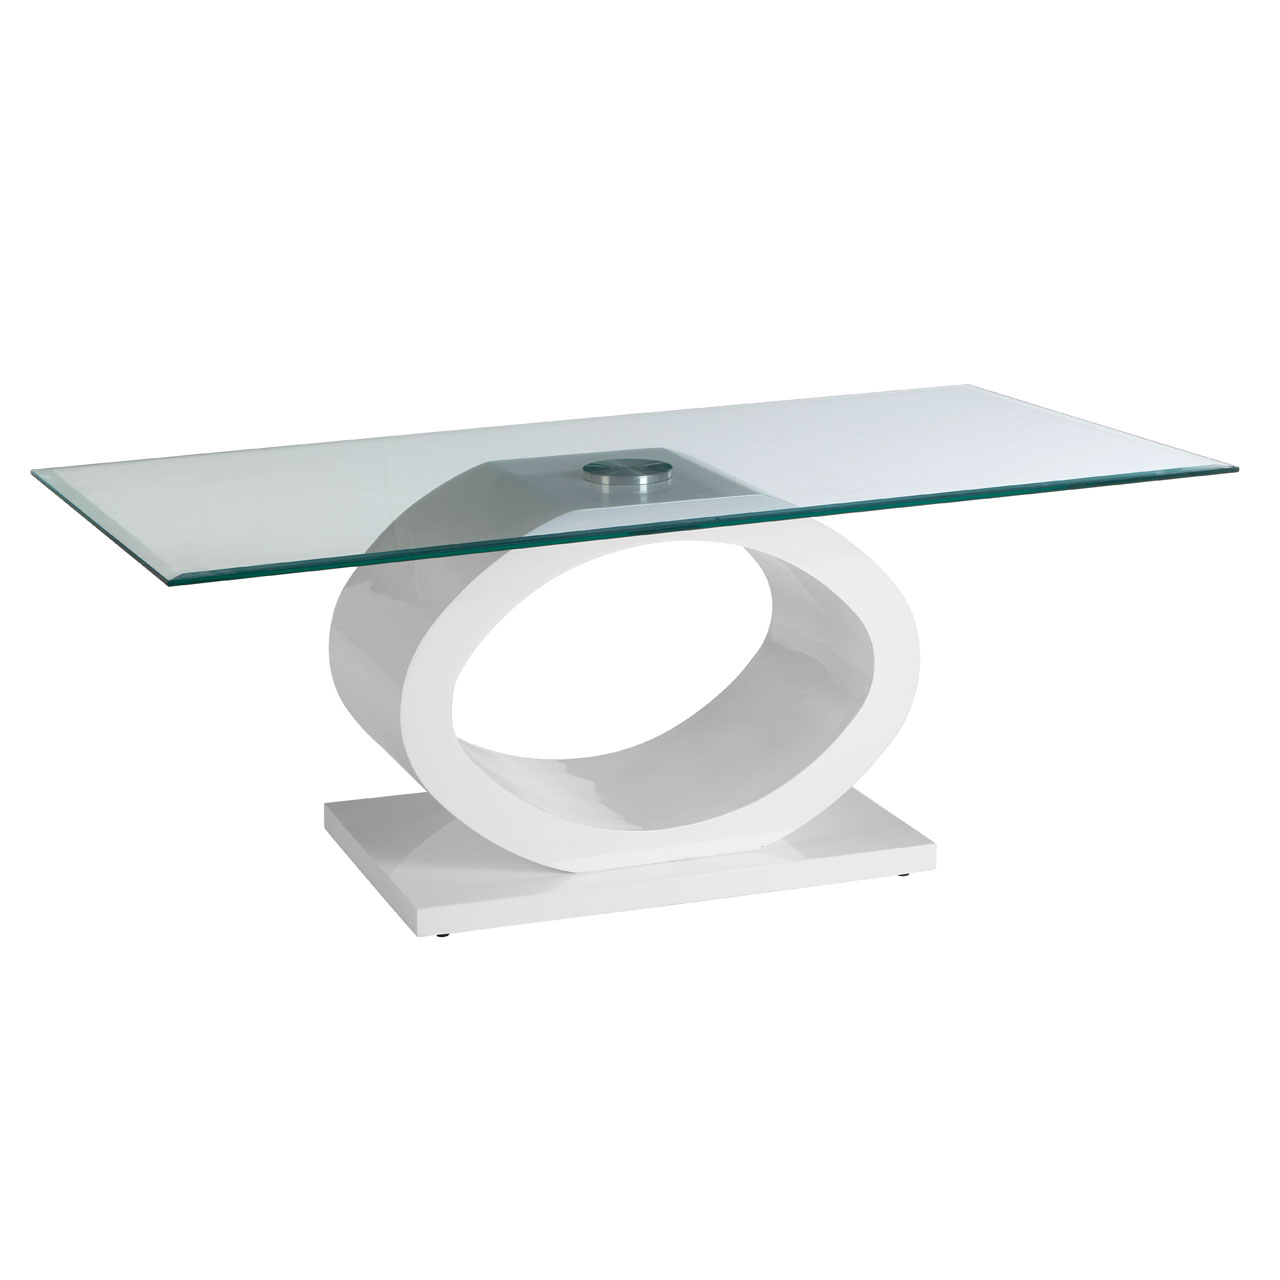 Halo Coffee Table White High Gloss and Tempered Glass